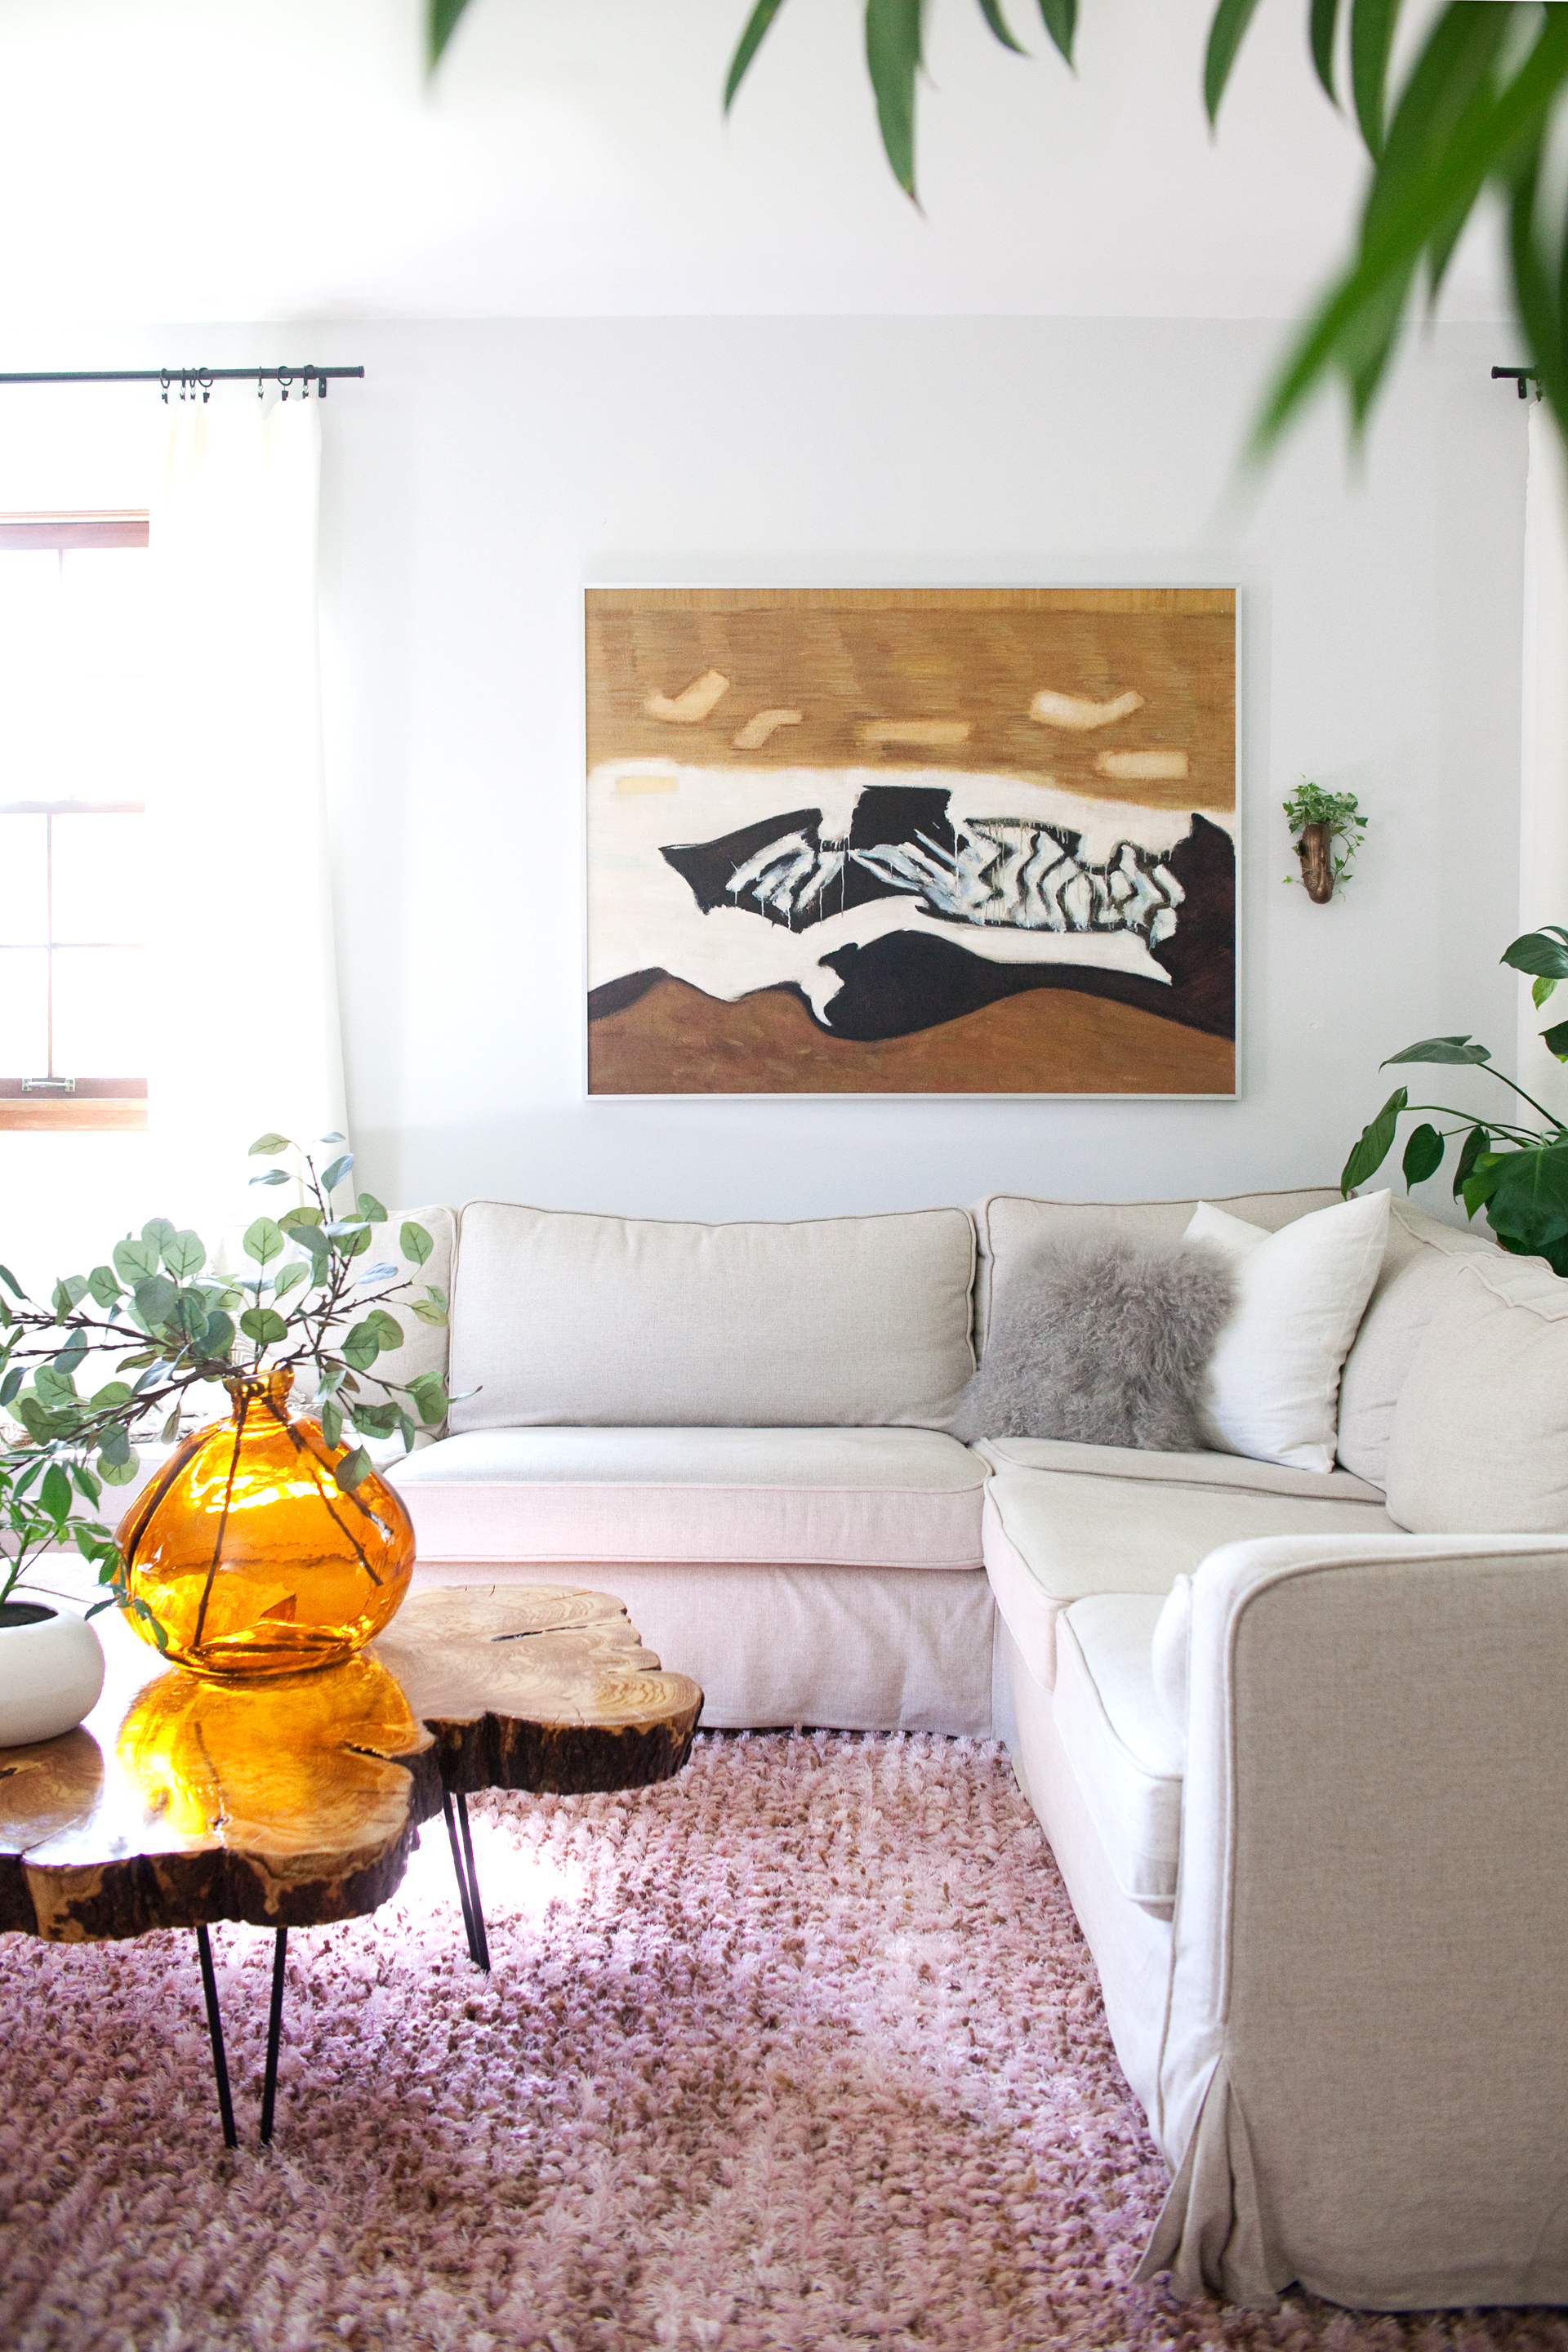 Easy Tips for a Living Room Refresh - A Beautiful Mess